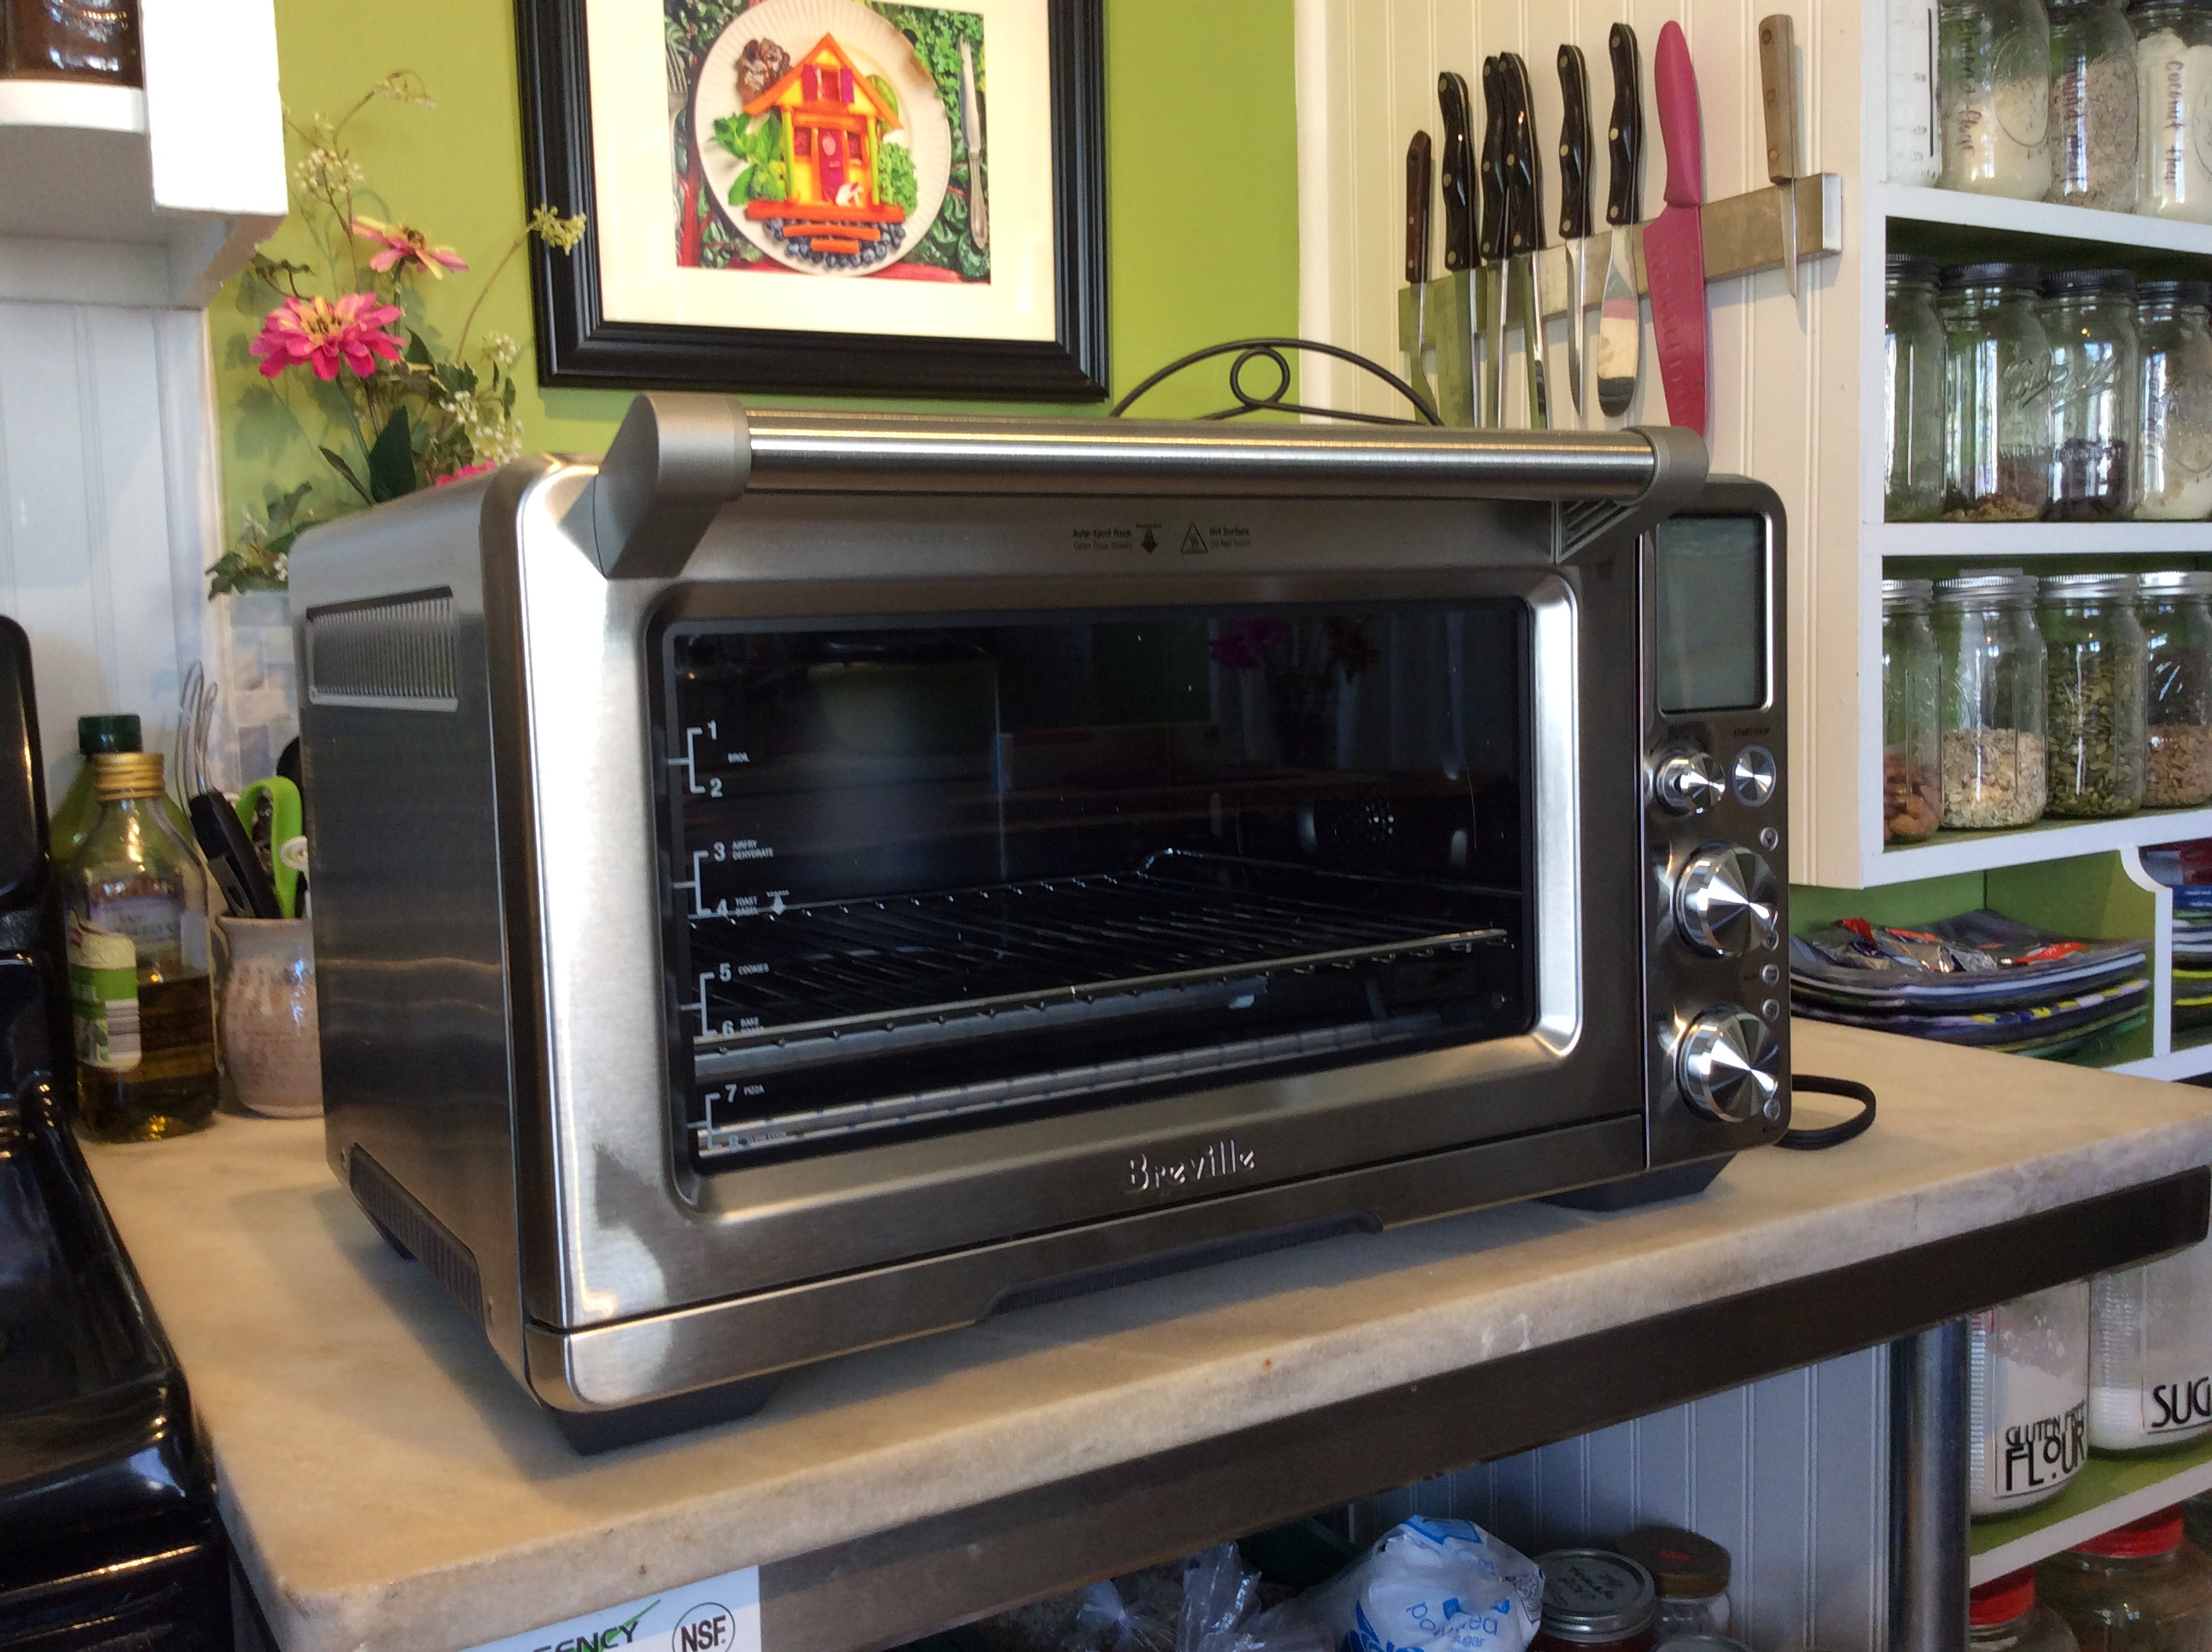 #6 Vinnie Vlog: Choosing the Right Oven for our Skoolie Kitchen